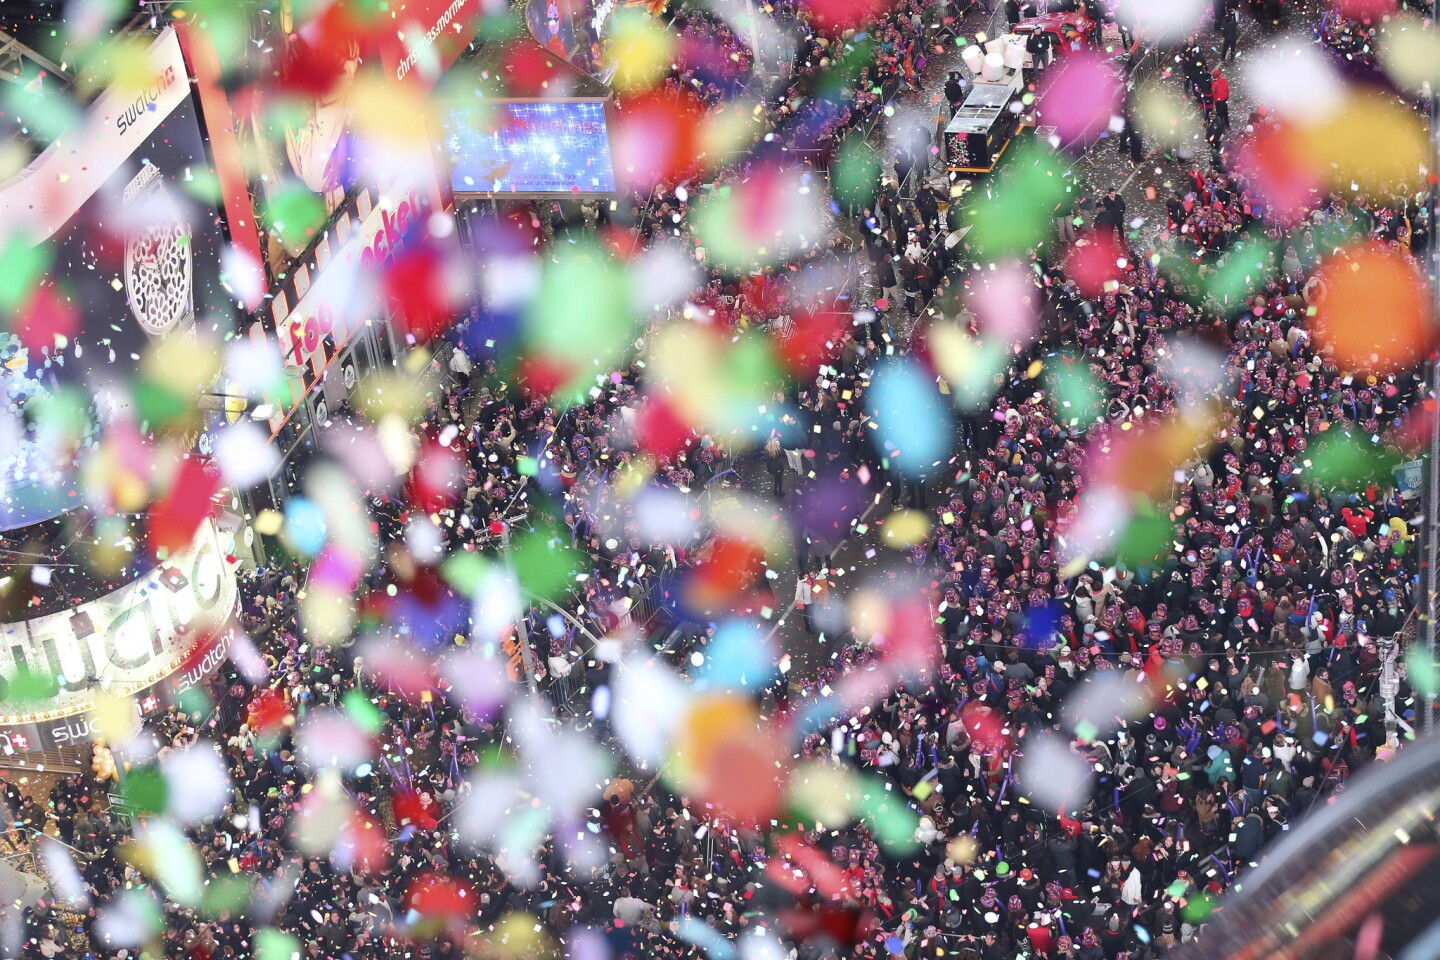 Confetti flies over New York's Times Square after the clock strikes midnight during the New Year's Eve celebration as seen from the New York Marriott Marquis hotel, Friday, Jan. 1, 2016.